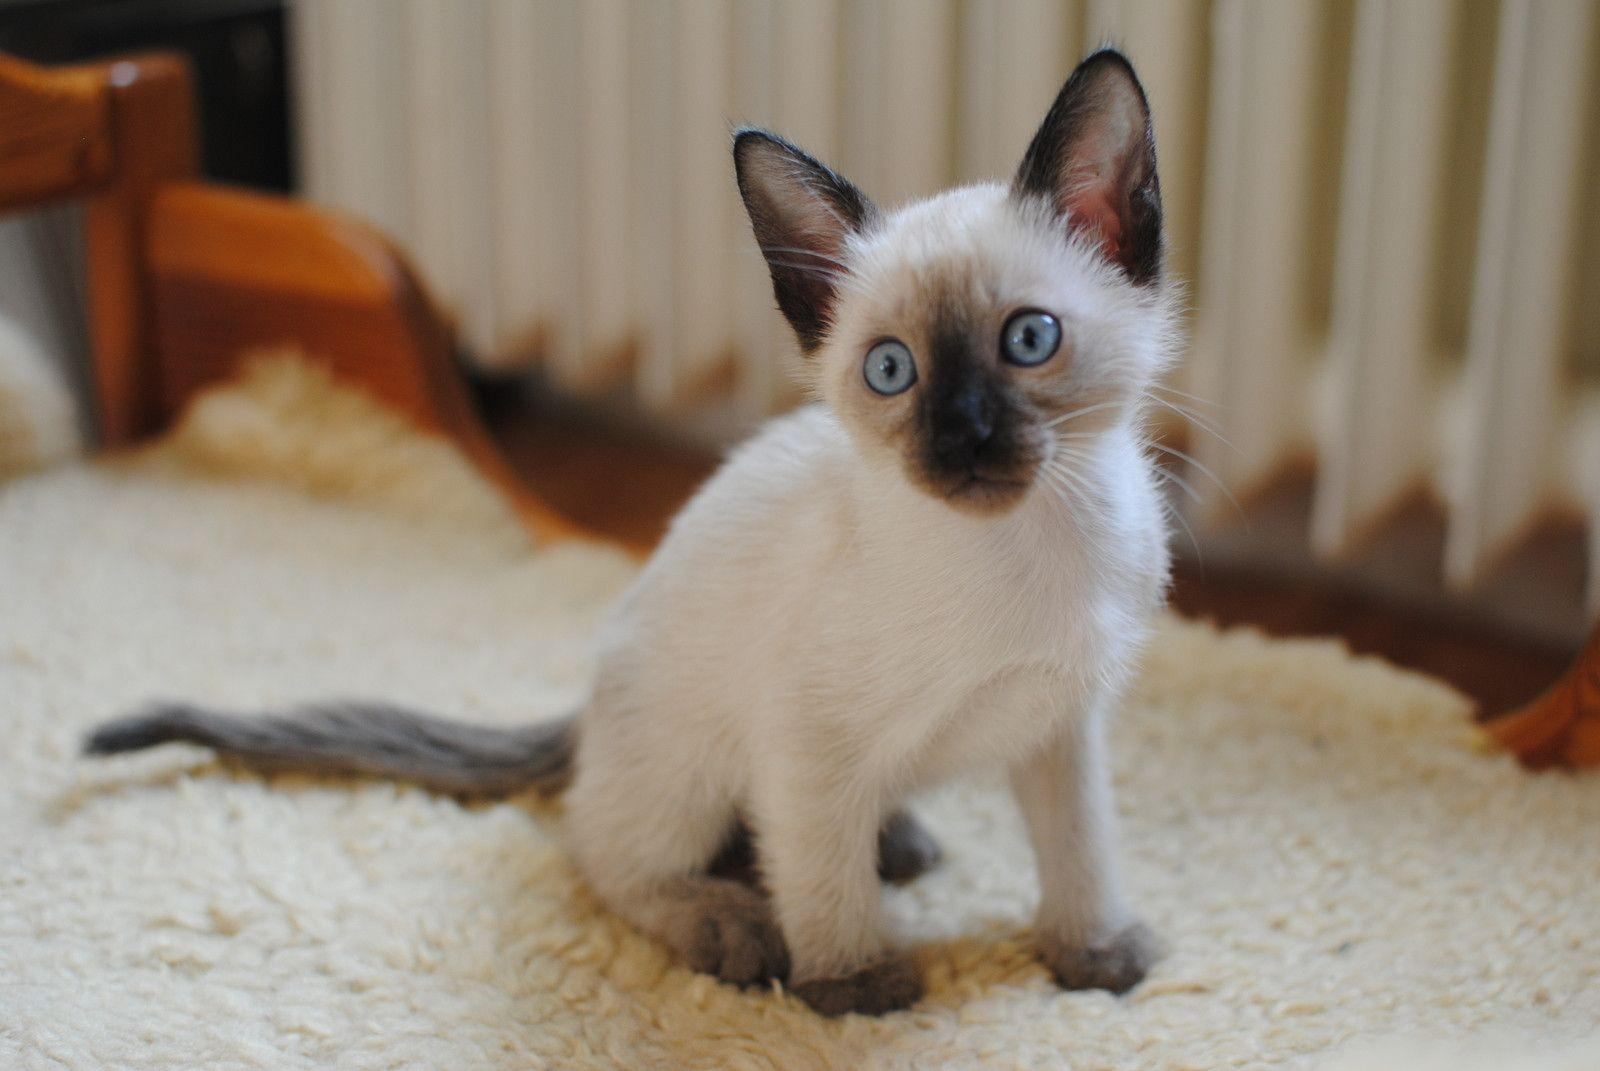 siamese x ragdoll kittens - photo #33